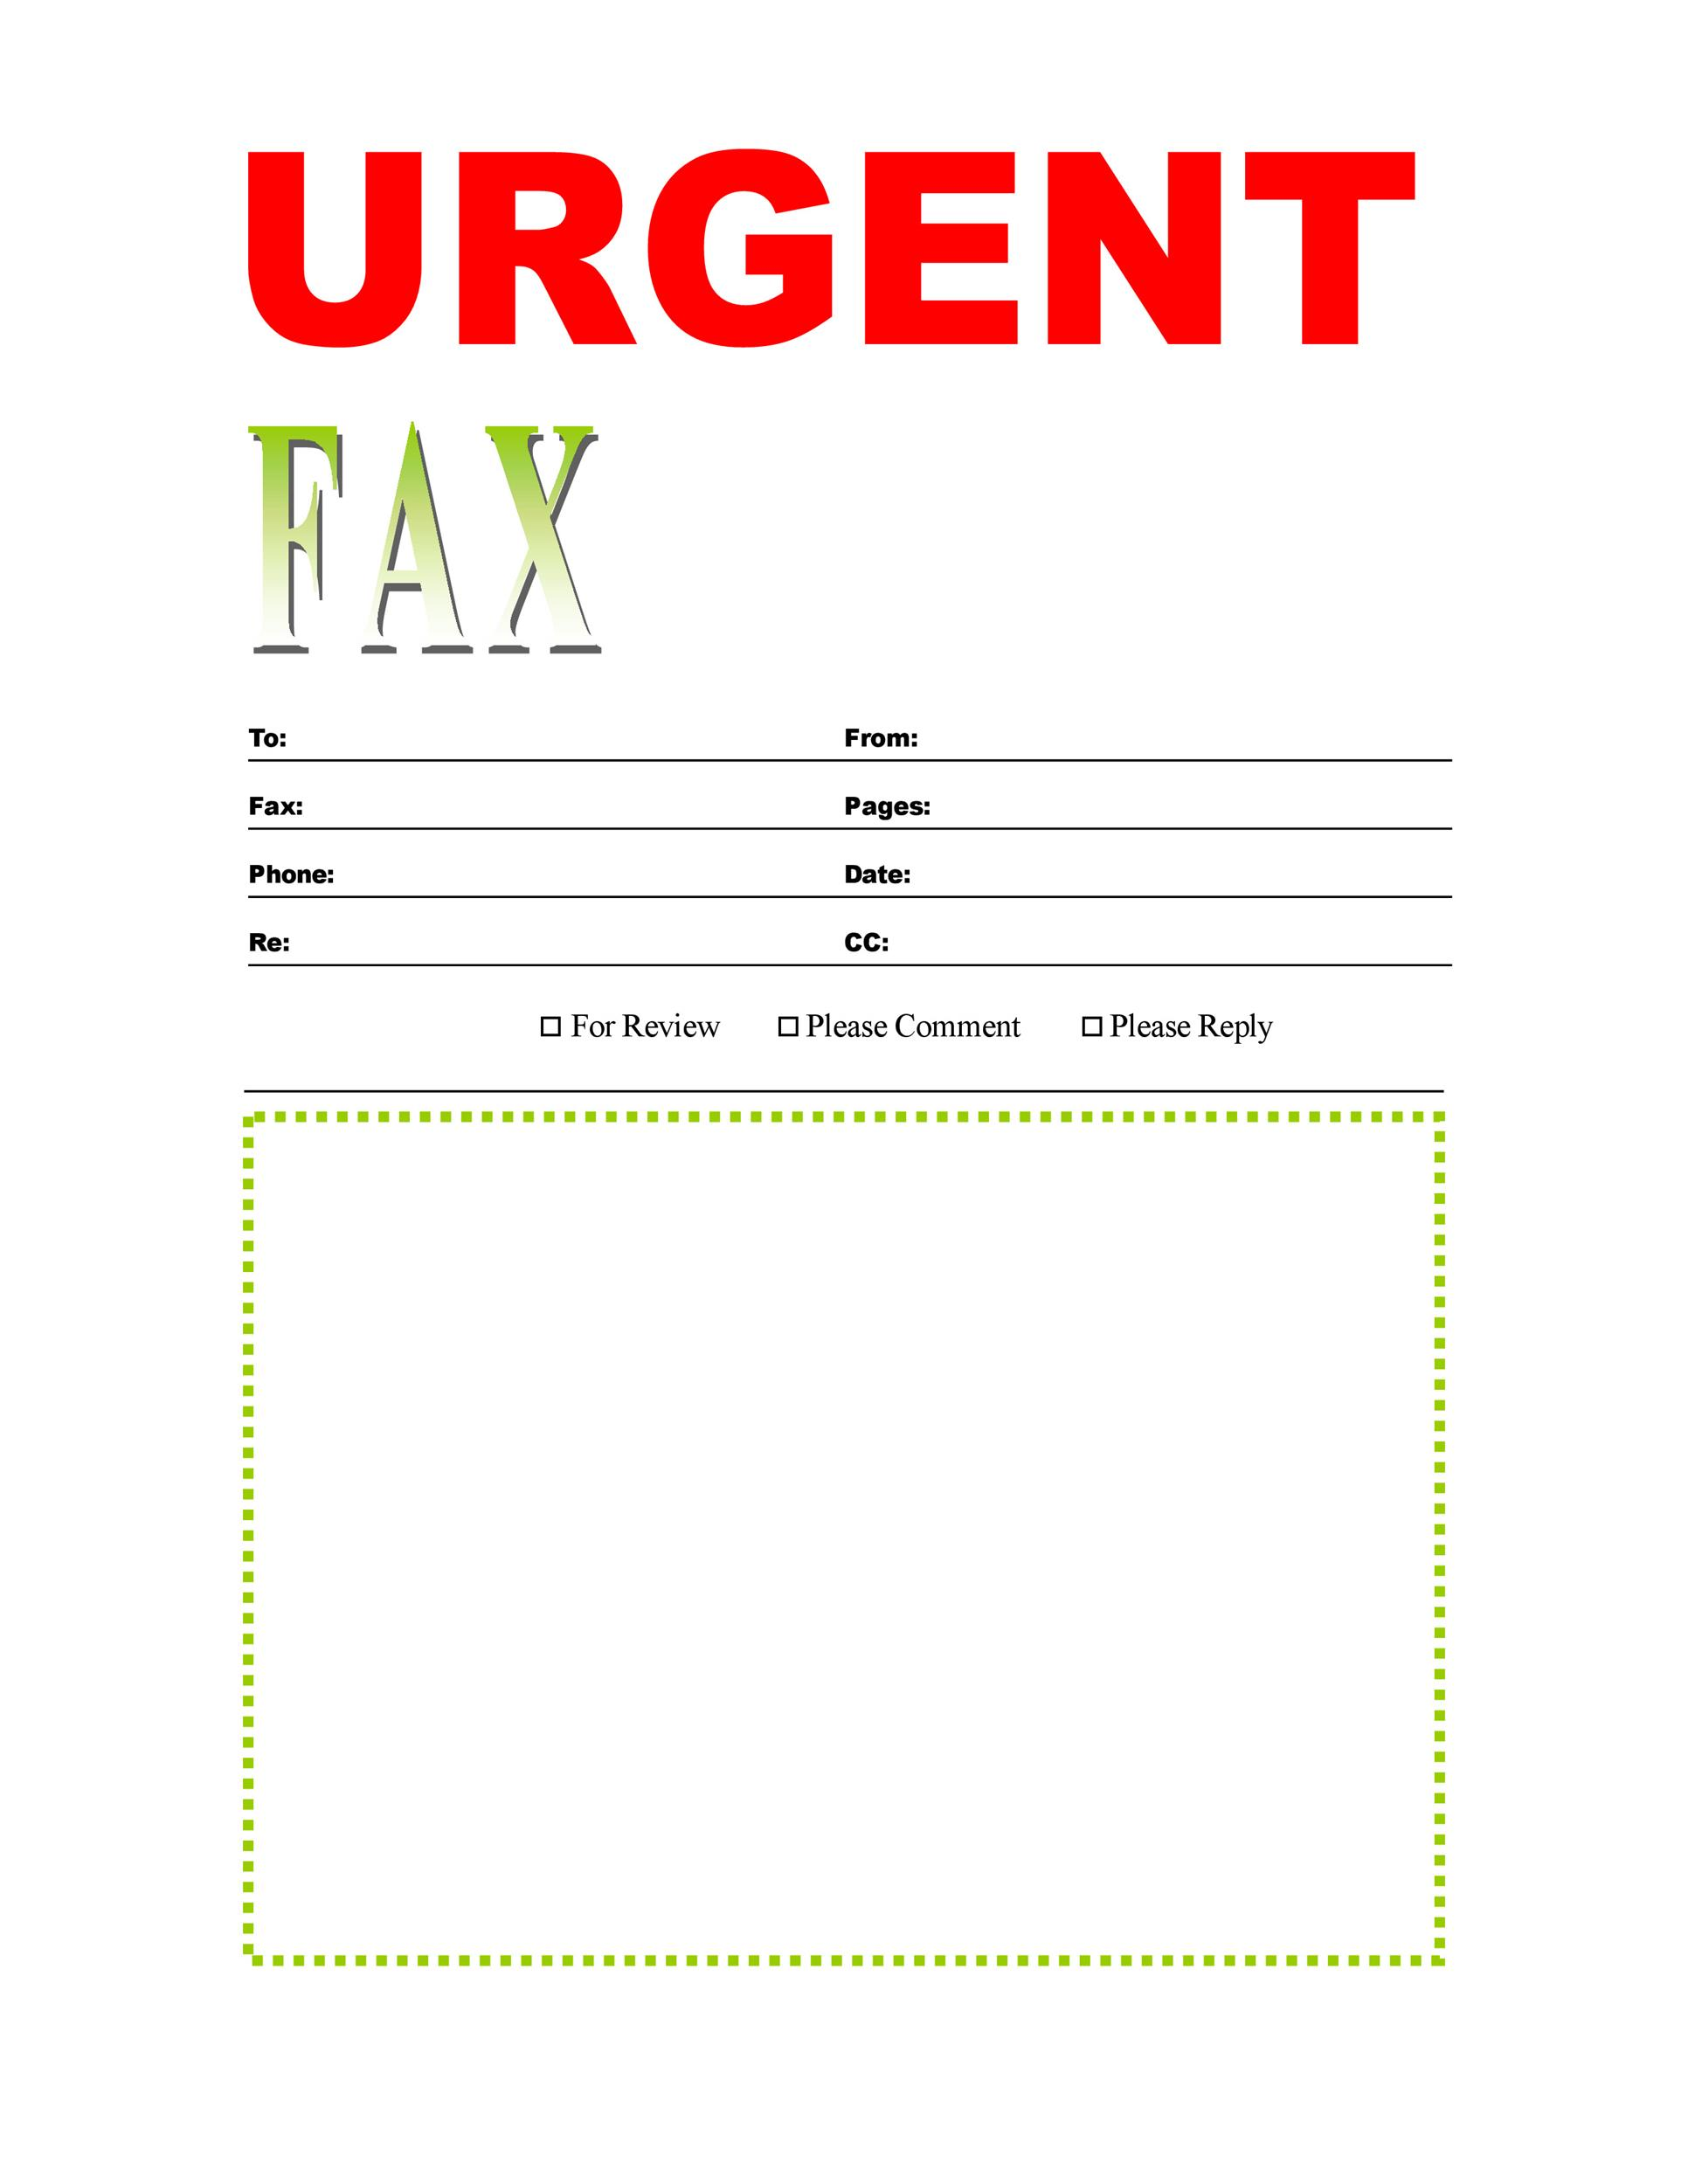 Generic Fax Cover Sheets Antique Car Fax Cover Sheet At